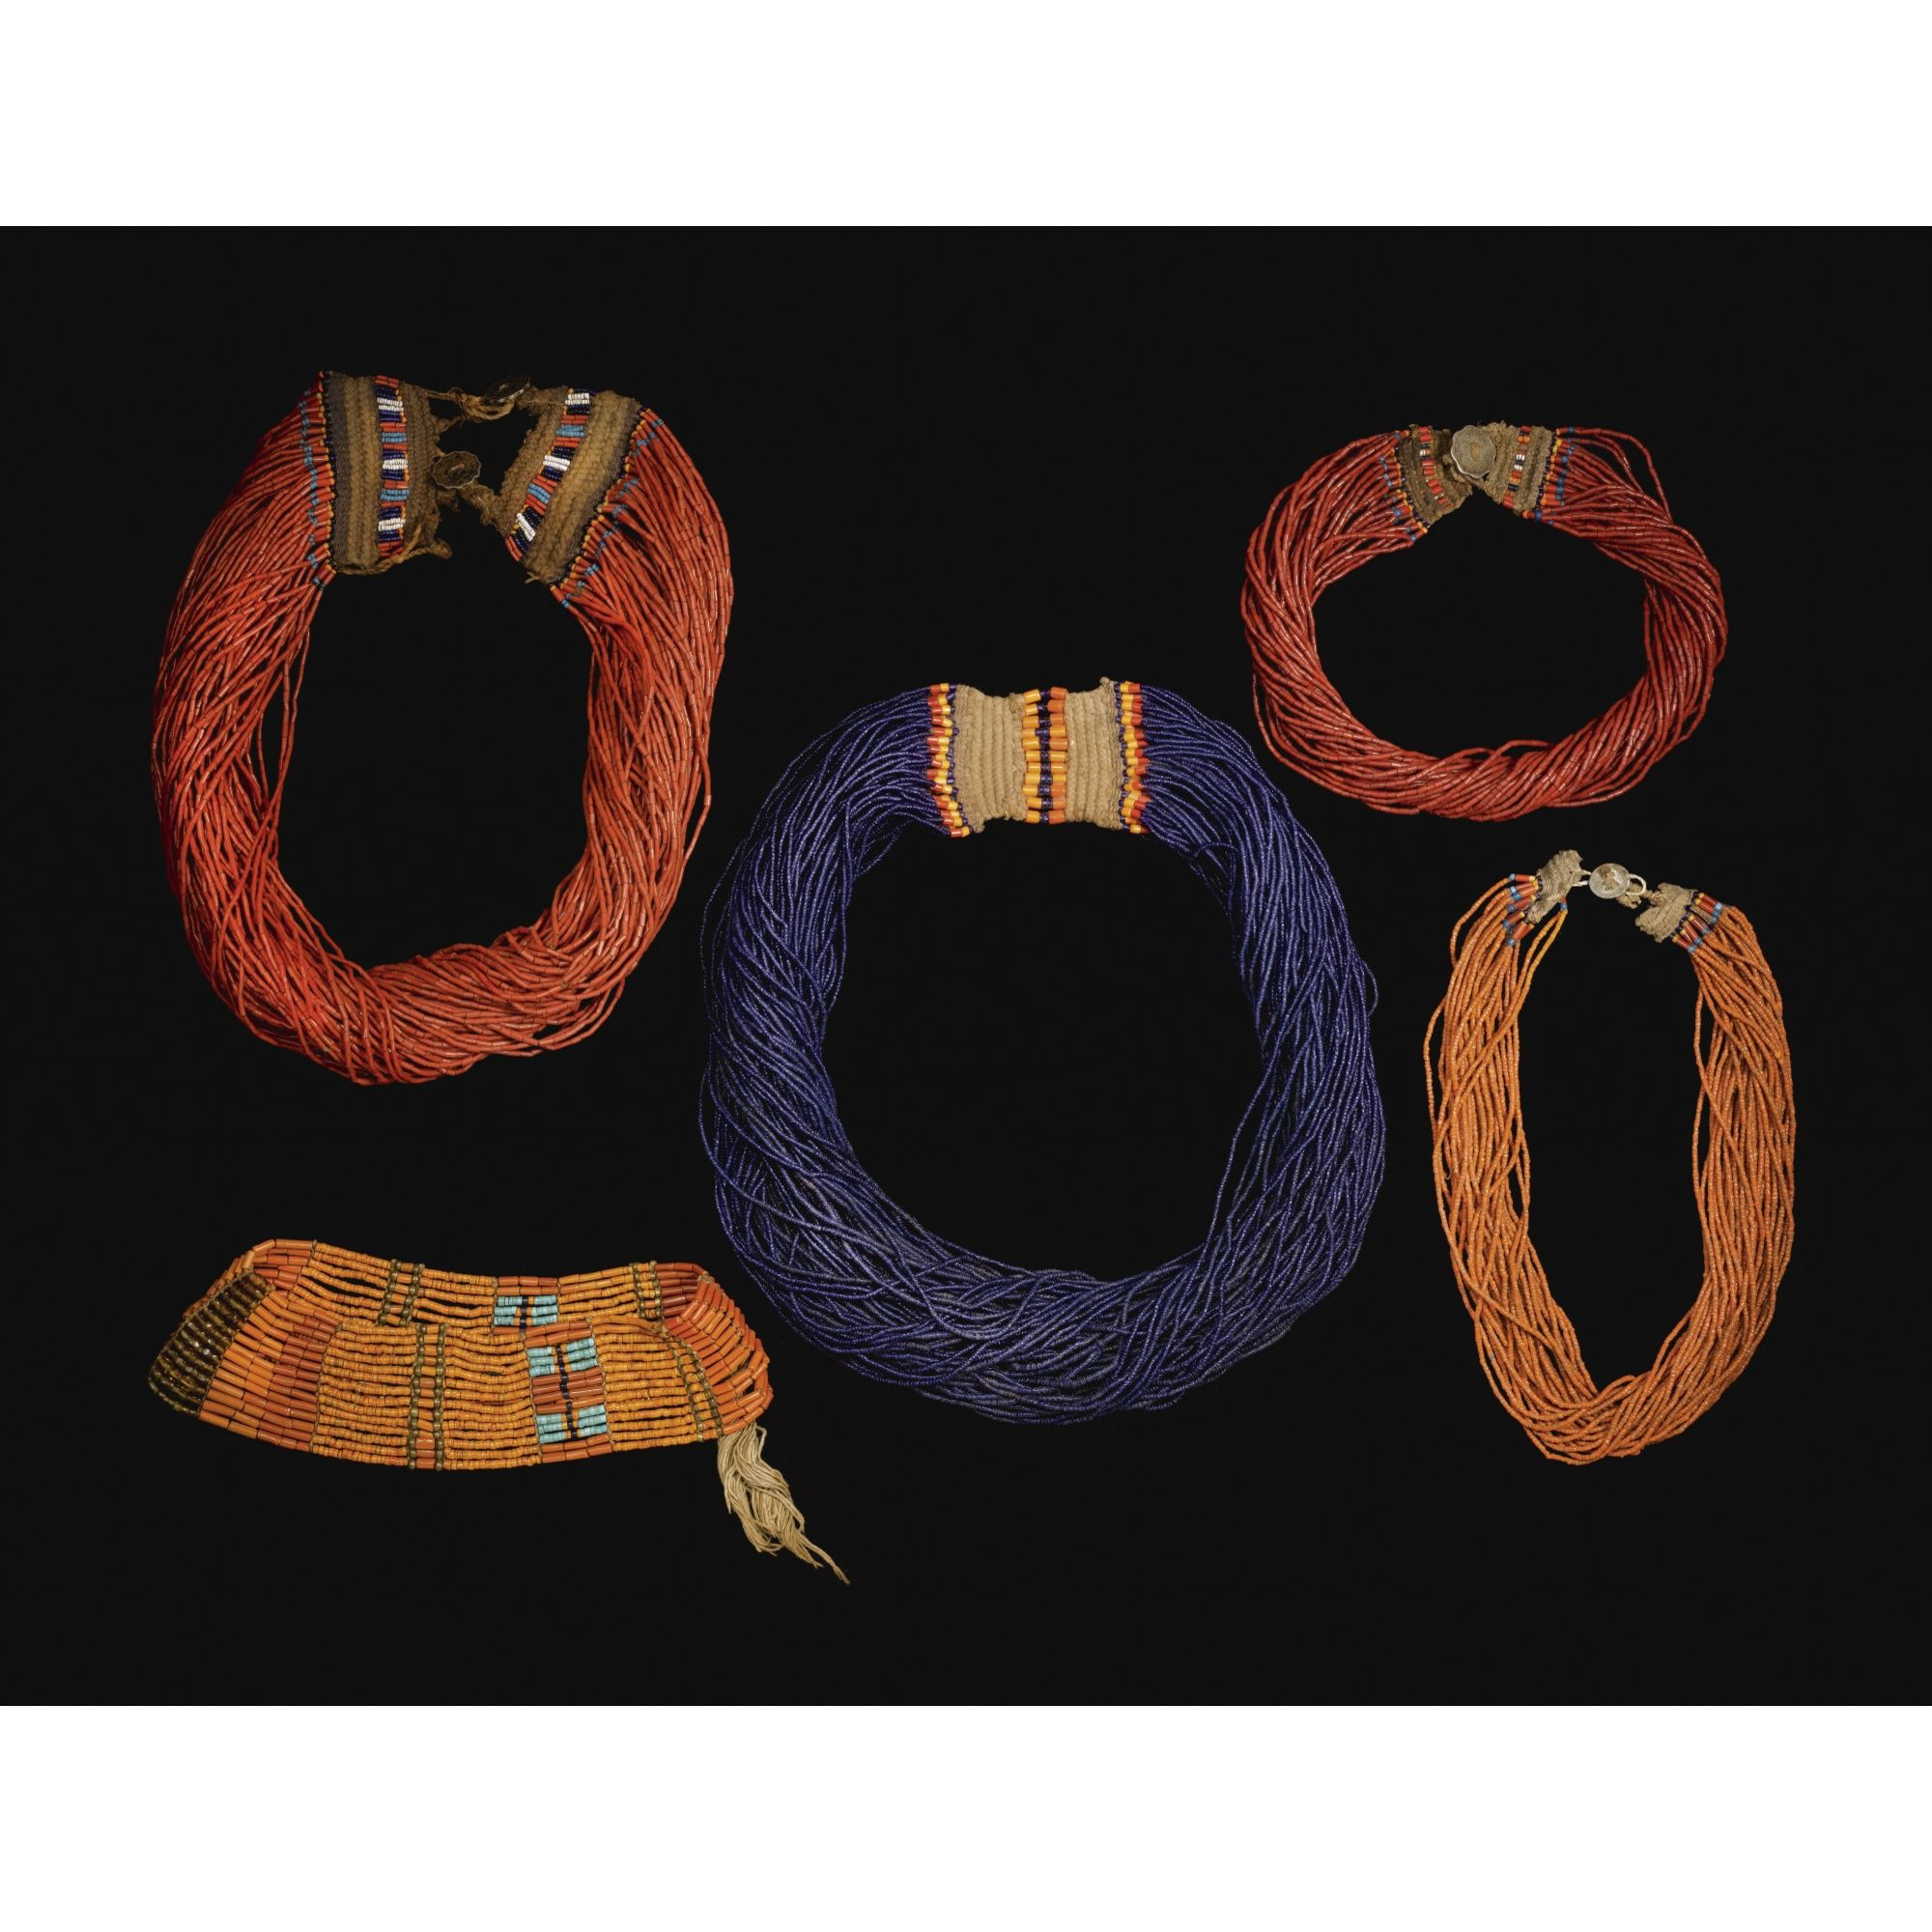 FIVE NAGA GLASS-BEAD NECKLACES, NAGALAND, NORTH-EAST INDIA.